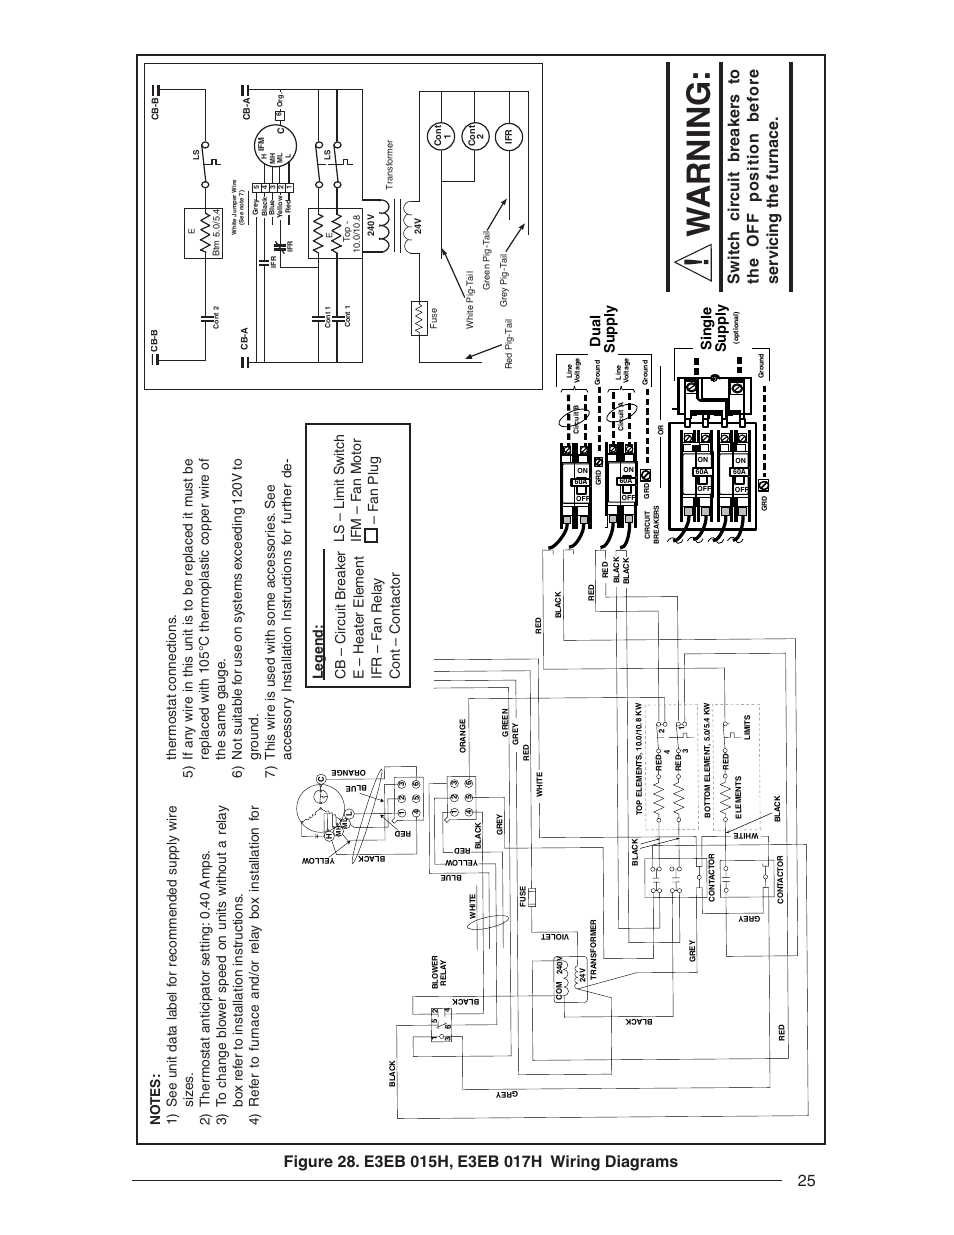 wiring diagram 50 amp rv with Electrical Wiring Diagram For C Er on 1 8  Headphone Jack Wiring Diagram in addition Setting Temporary Wiring Harness 49 Flathead Peterbilt 387 Fuse Box besides Transferswitch further 300w Inverter Wiring Diagram furthermore PK54220.